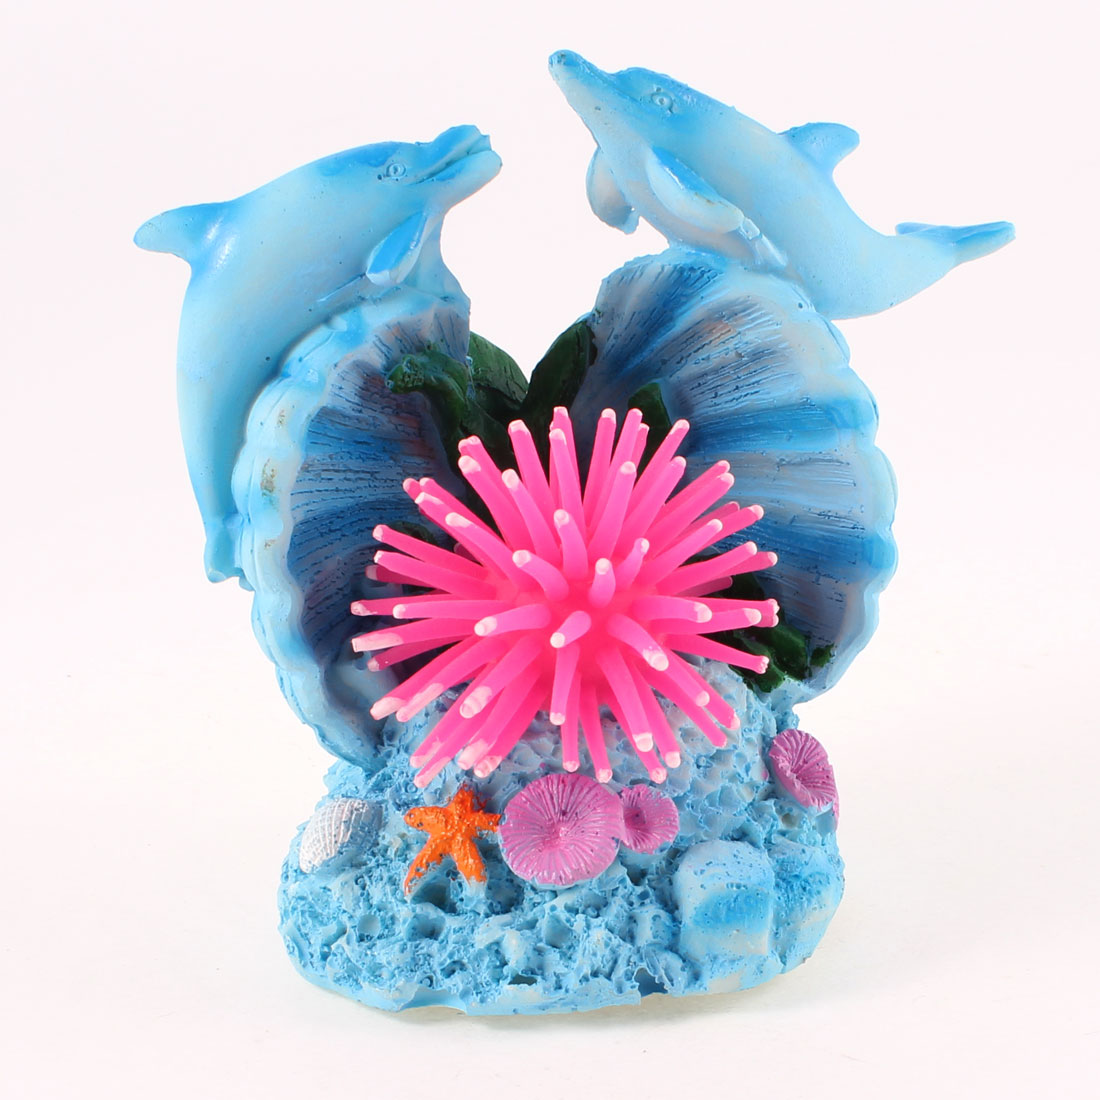 2pcs Blue Resin Dolphin Pink Silicone Sea Anemone Decoration for Fish Tank